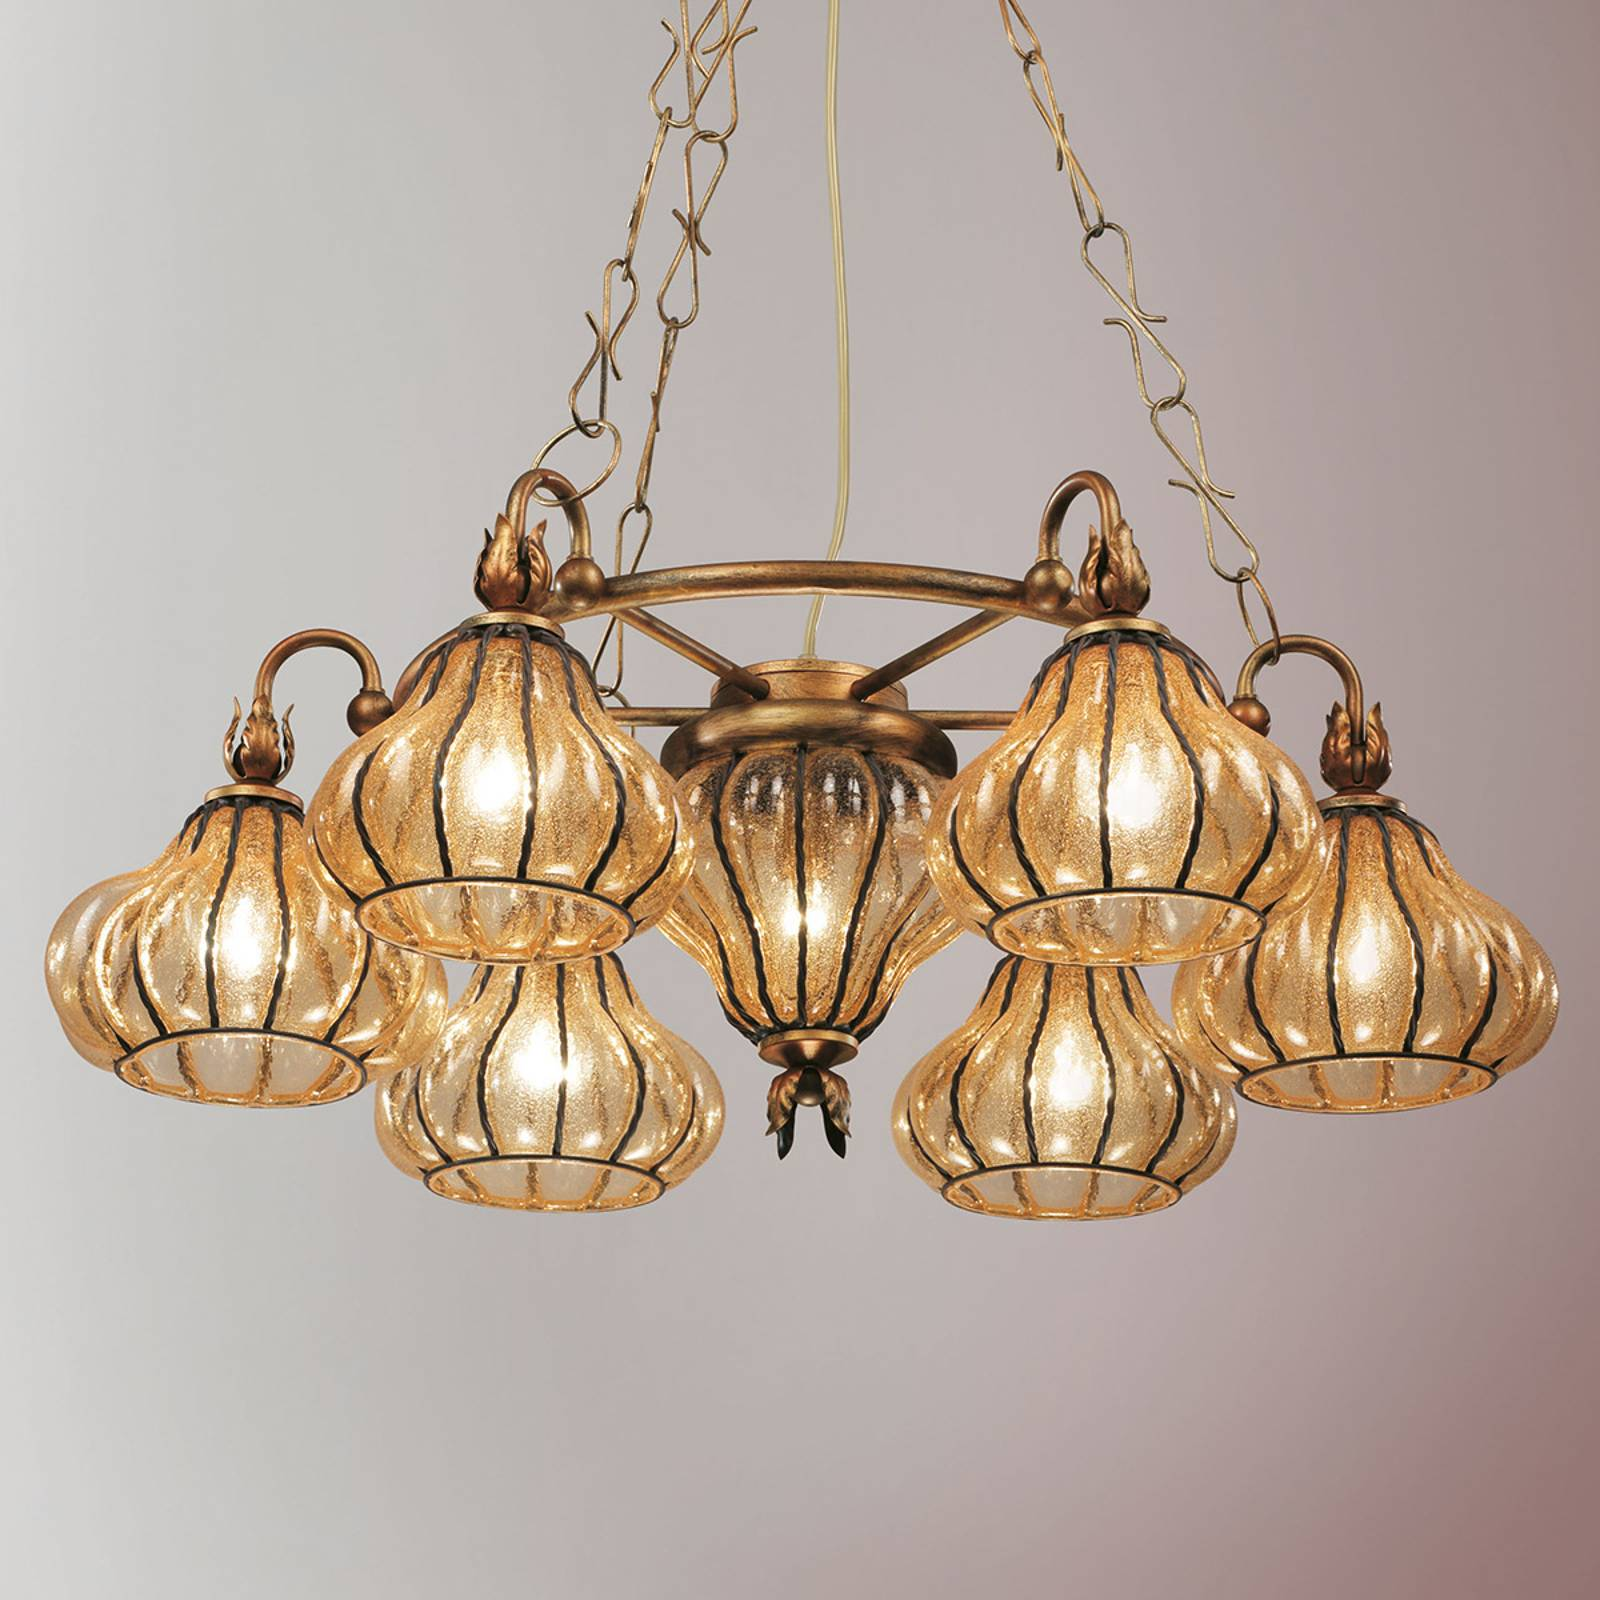 Carro hanging light with seven glass lampshades from Siru